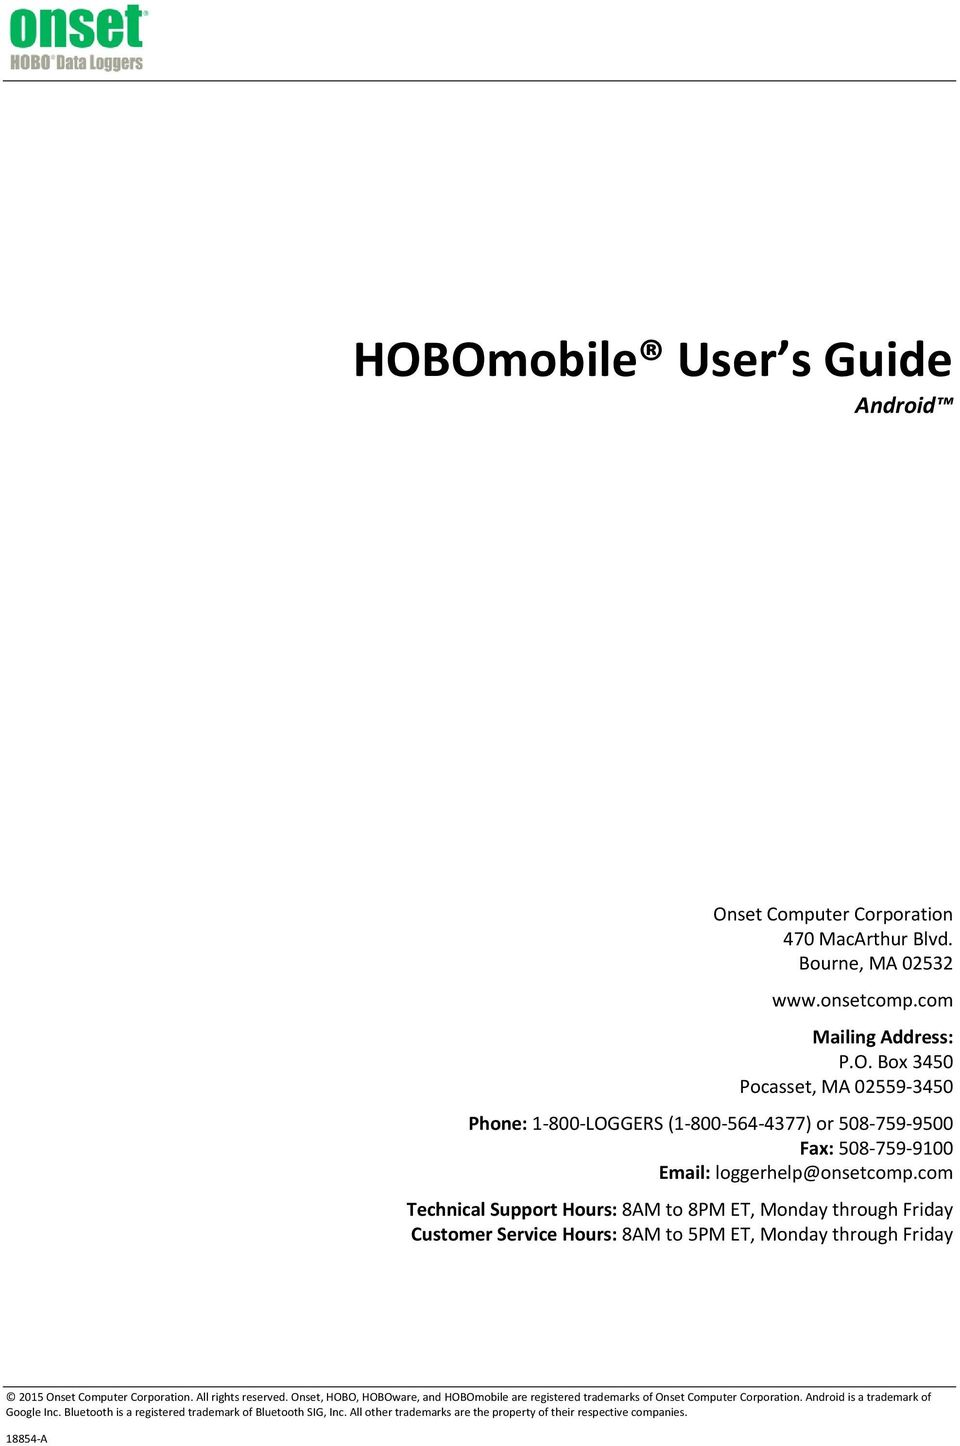 Onset, HOBO, HOBOware, and HOBOmobile are registered trademarks of Onset Computer Corporation. Android is a trademark of Google Inc.